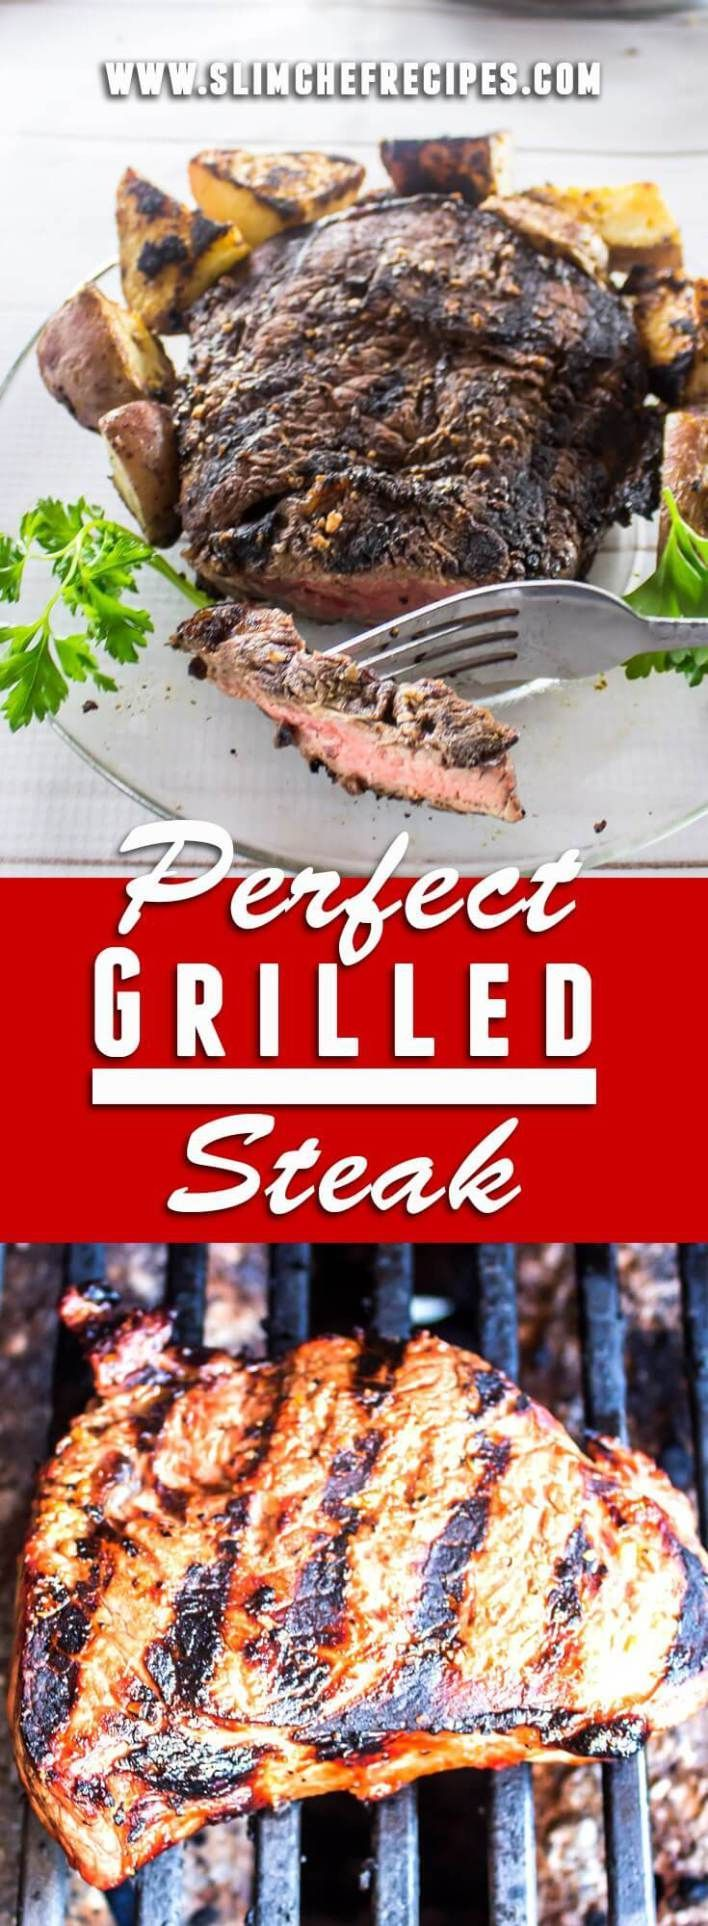 Best way to grill a steak   Steak on gas grill, How to ...